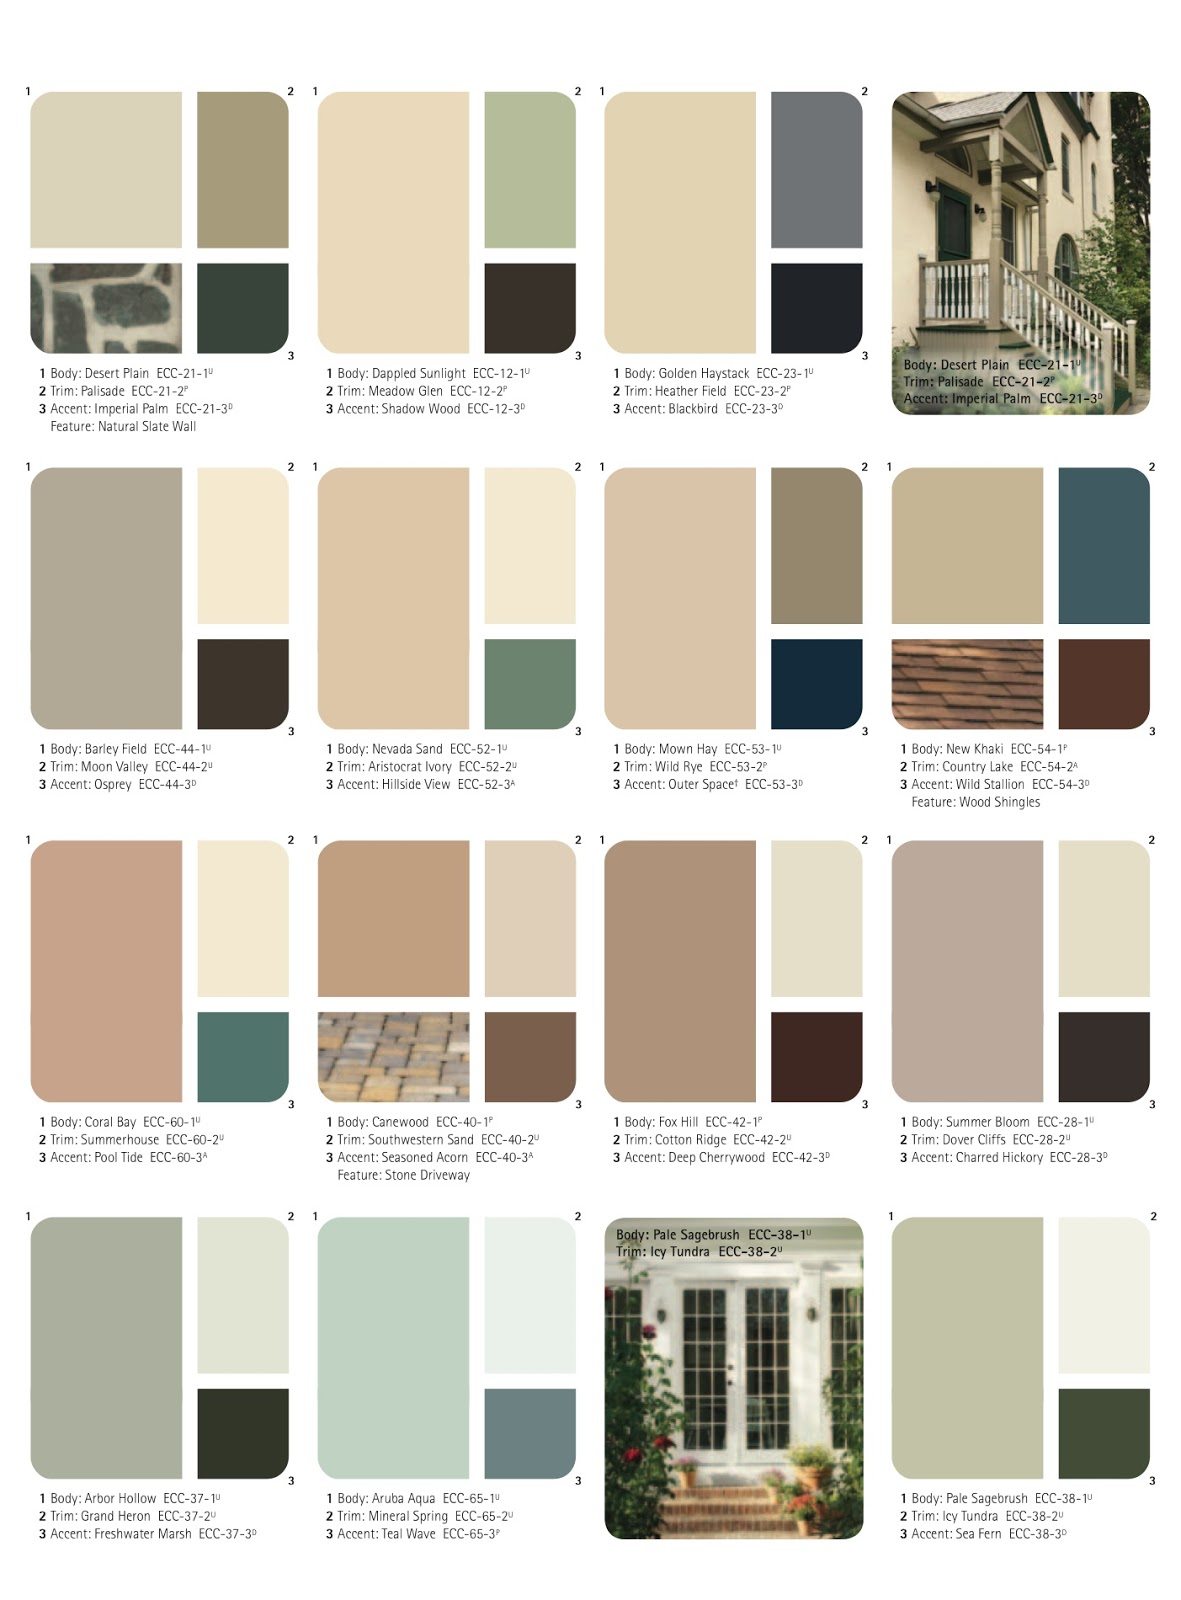 Home depot house paint home painting ideas for Paint colors house exterior